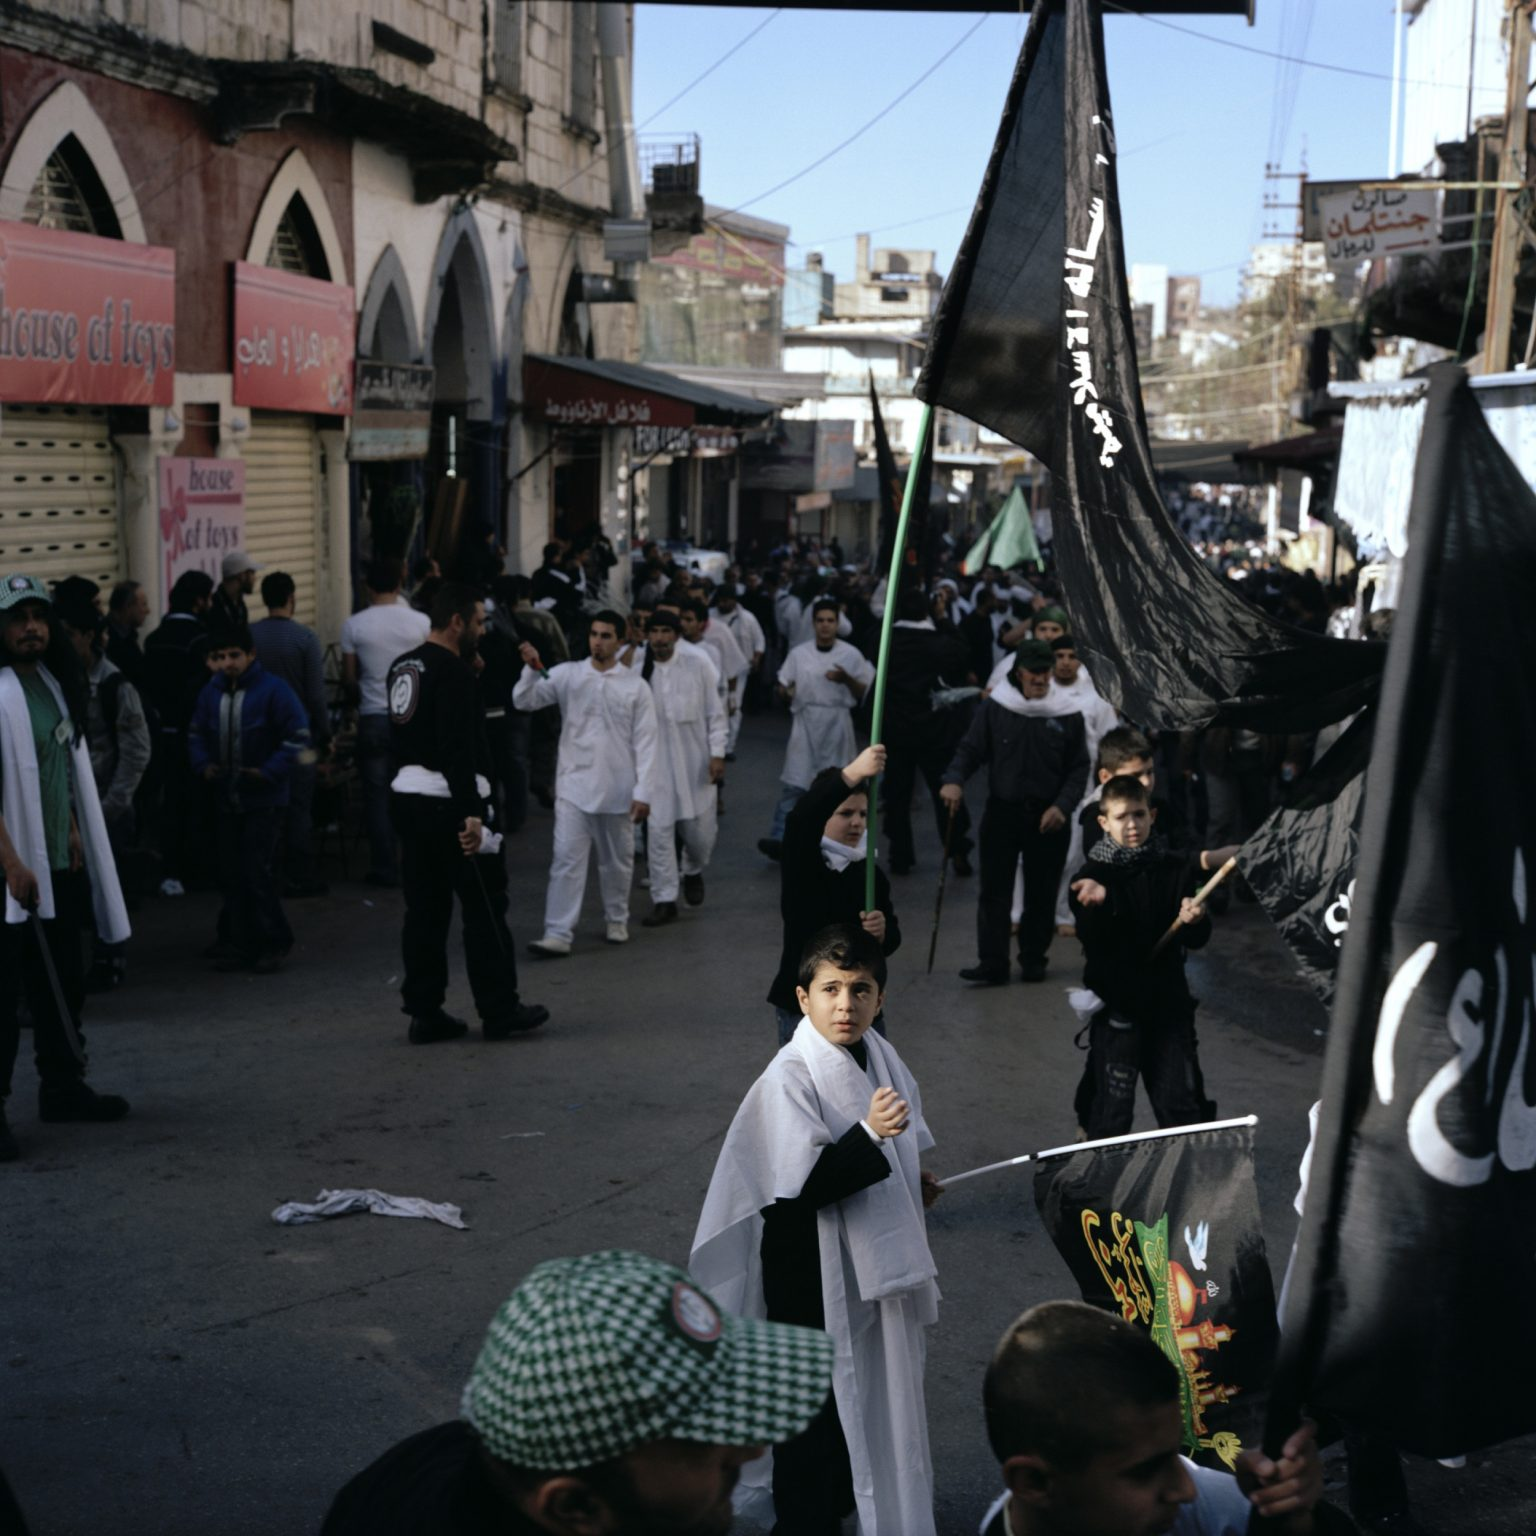 Nabatieh, Lebanon.The procession of a group of Shia celebrating Ashura in the center of the town. Ashura, the most important religious celebration for Shia Muslims. is a day of mourning for the martyrdom of Husayn ibn Ali, the grandson of the Islamic Prophet Muhammad, who died at the Battle of Karbala.